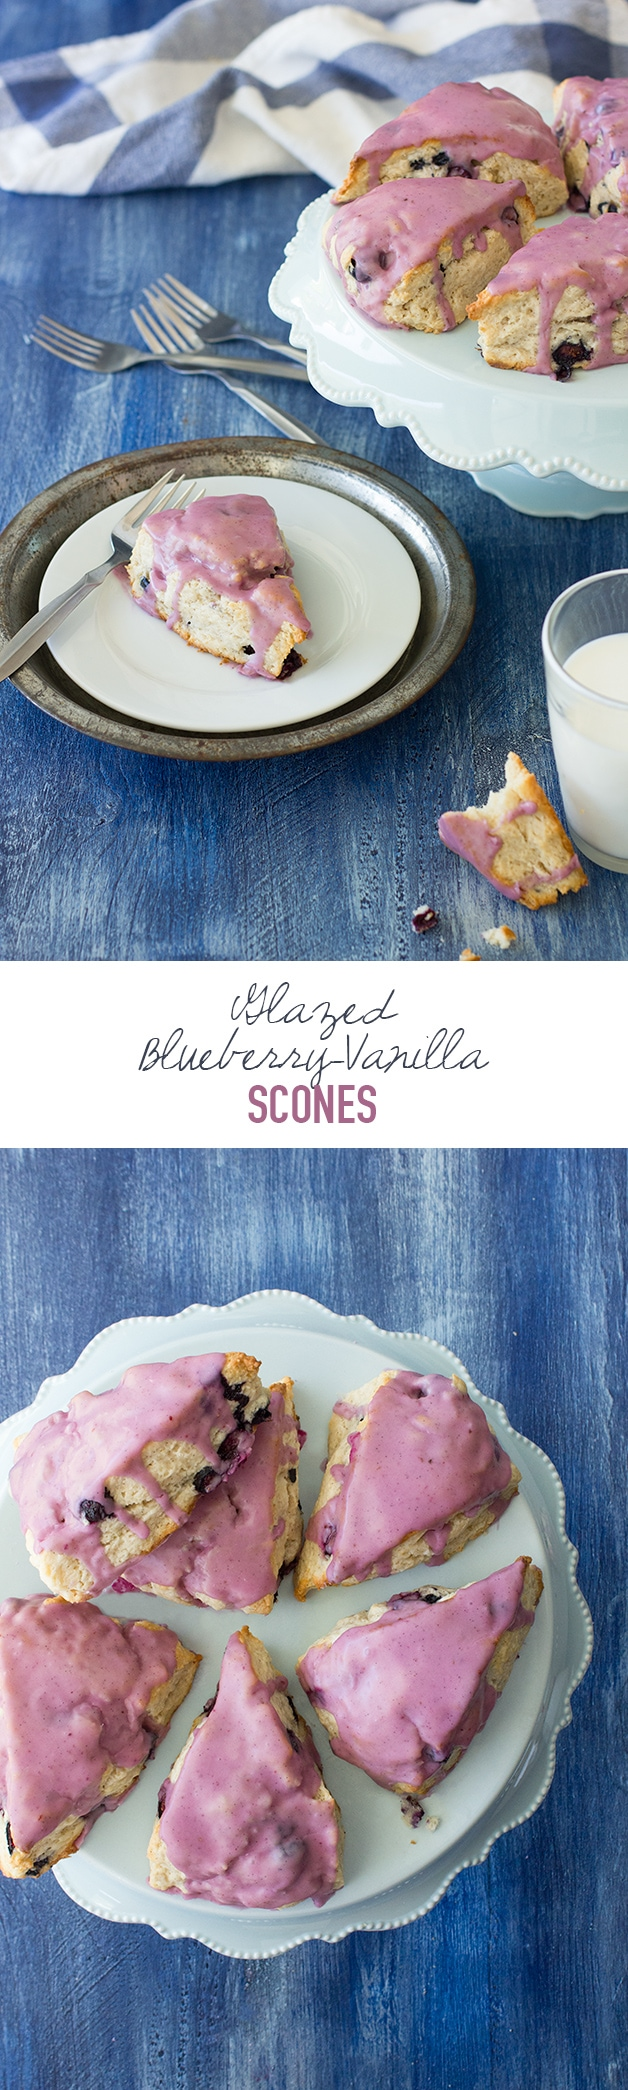 Glazed Blueberry Vanilla Bean Scones - fluffy and tender scones with an amazing vanilla flavor and juicy bits of blueberry taking center stage - plus a sweet, colorful blueberry glaze! | www.brighteyedbaker.com